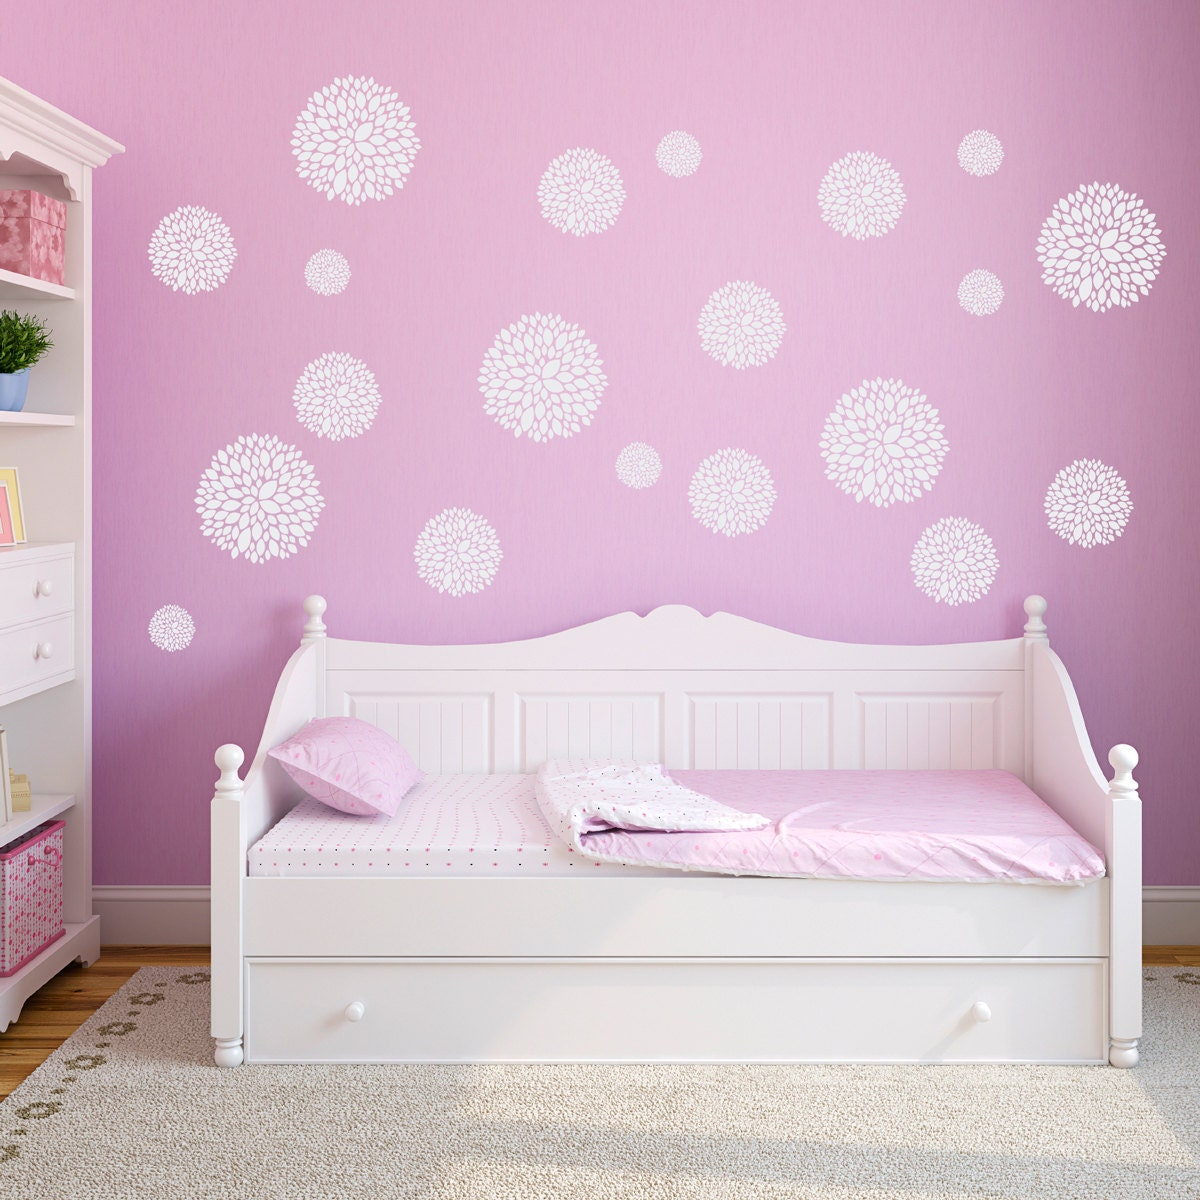 Peony Flower Wall Decals Set Of 20 Flowers Girls Bedroom